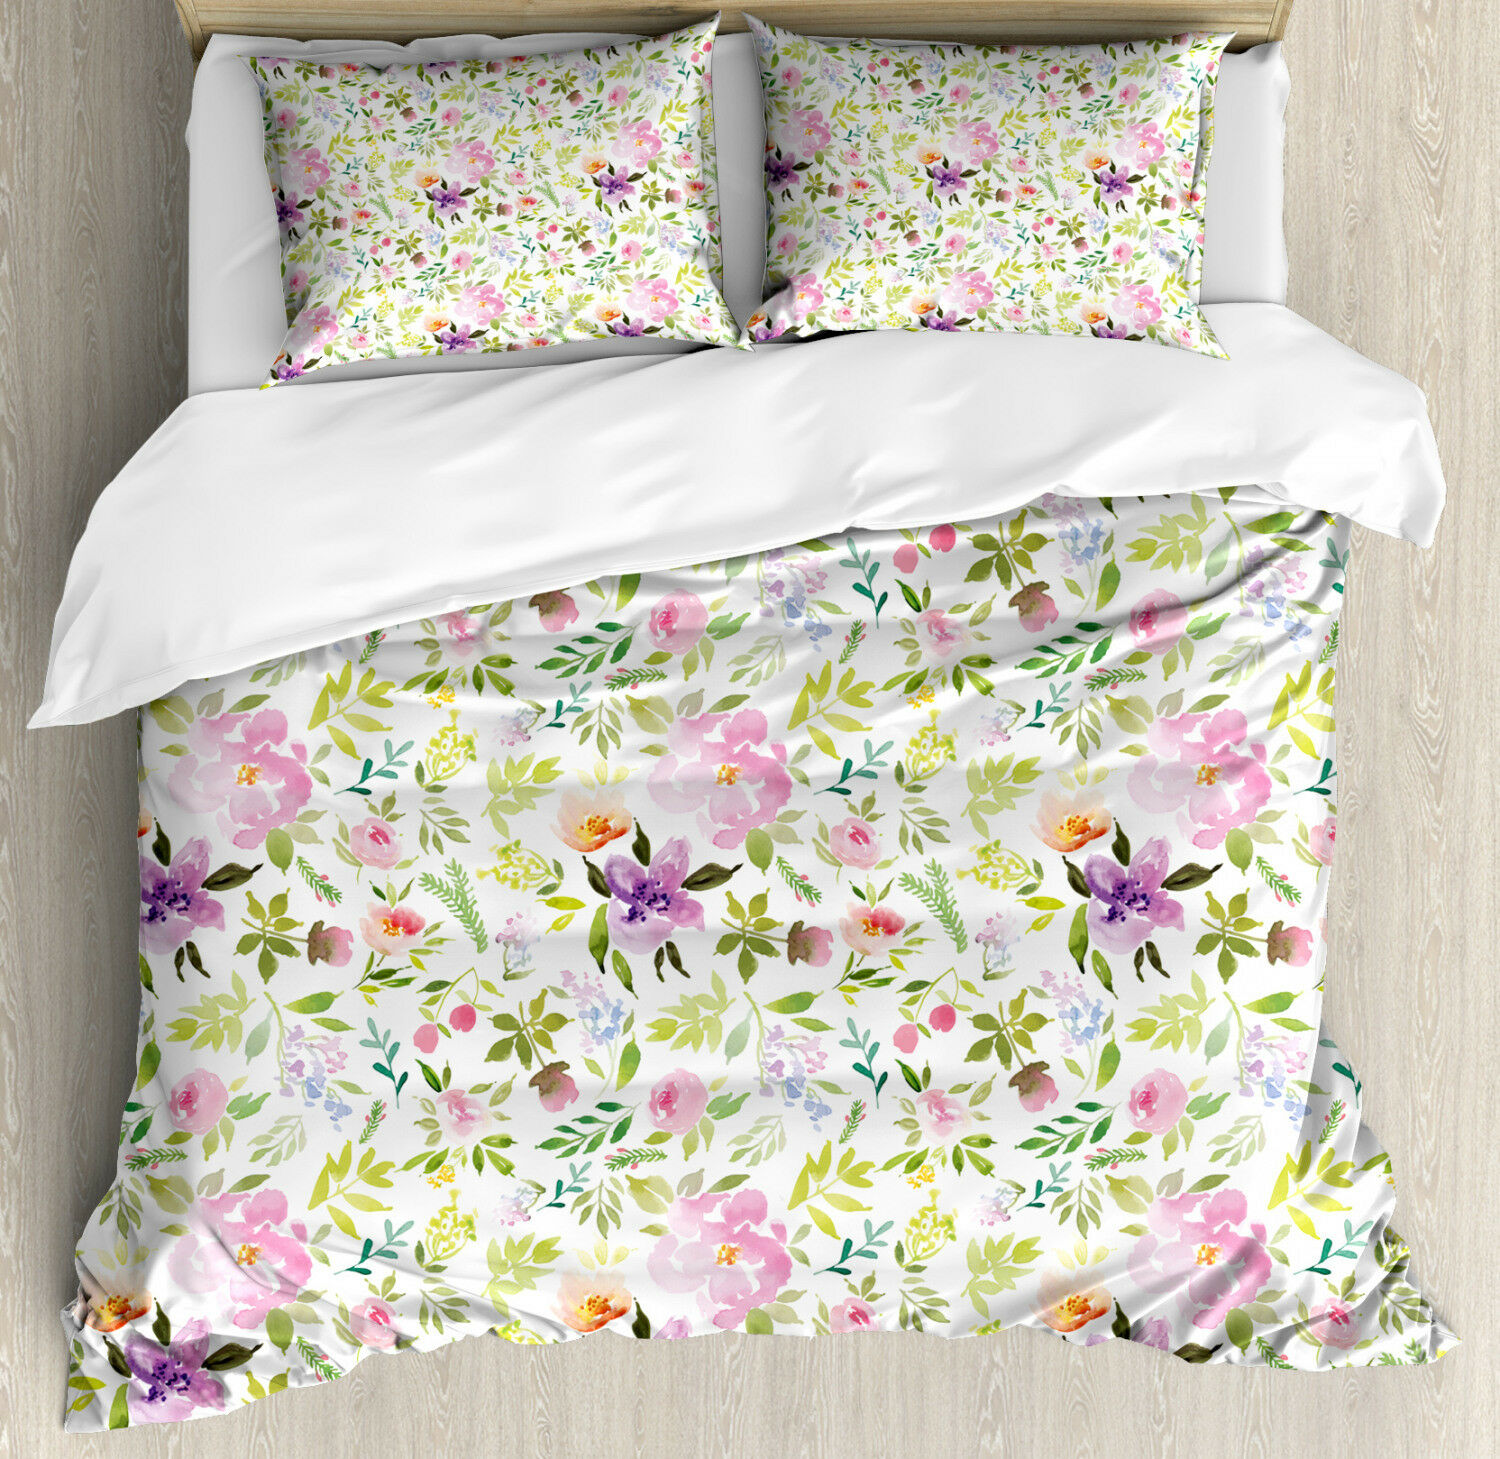 Watercolor Duvet Cover Set with Pillow Shams Gentle Spring Floral Print